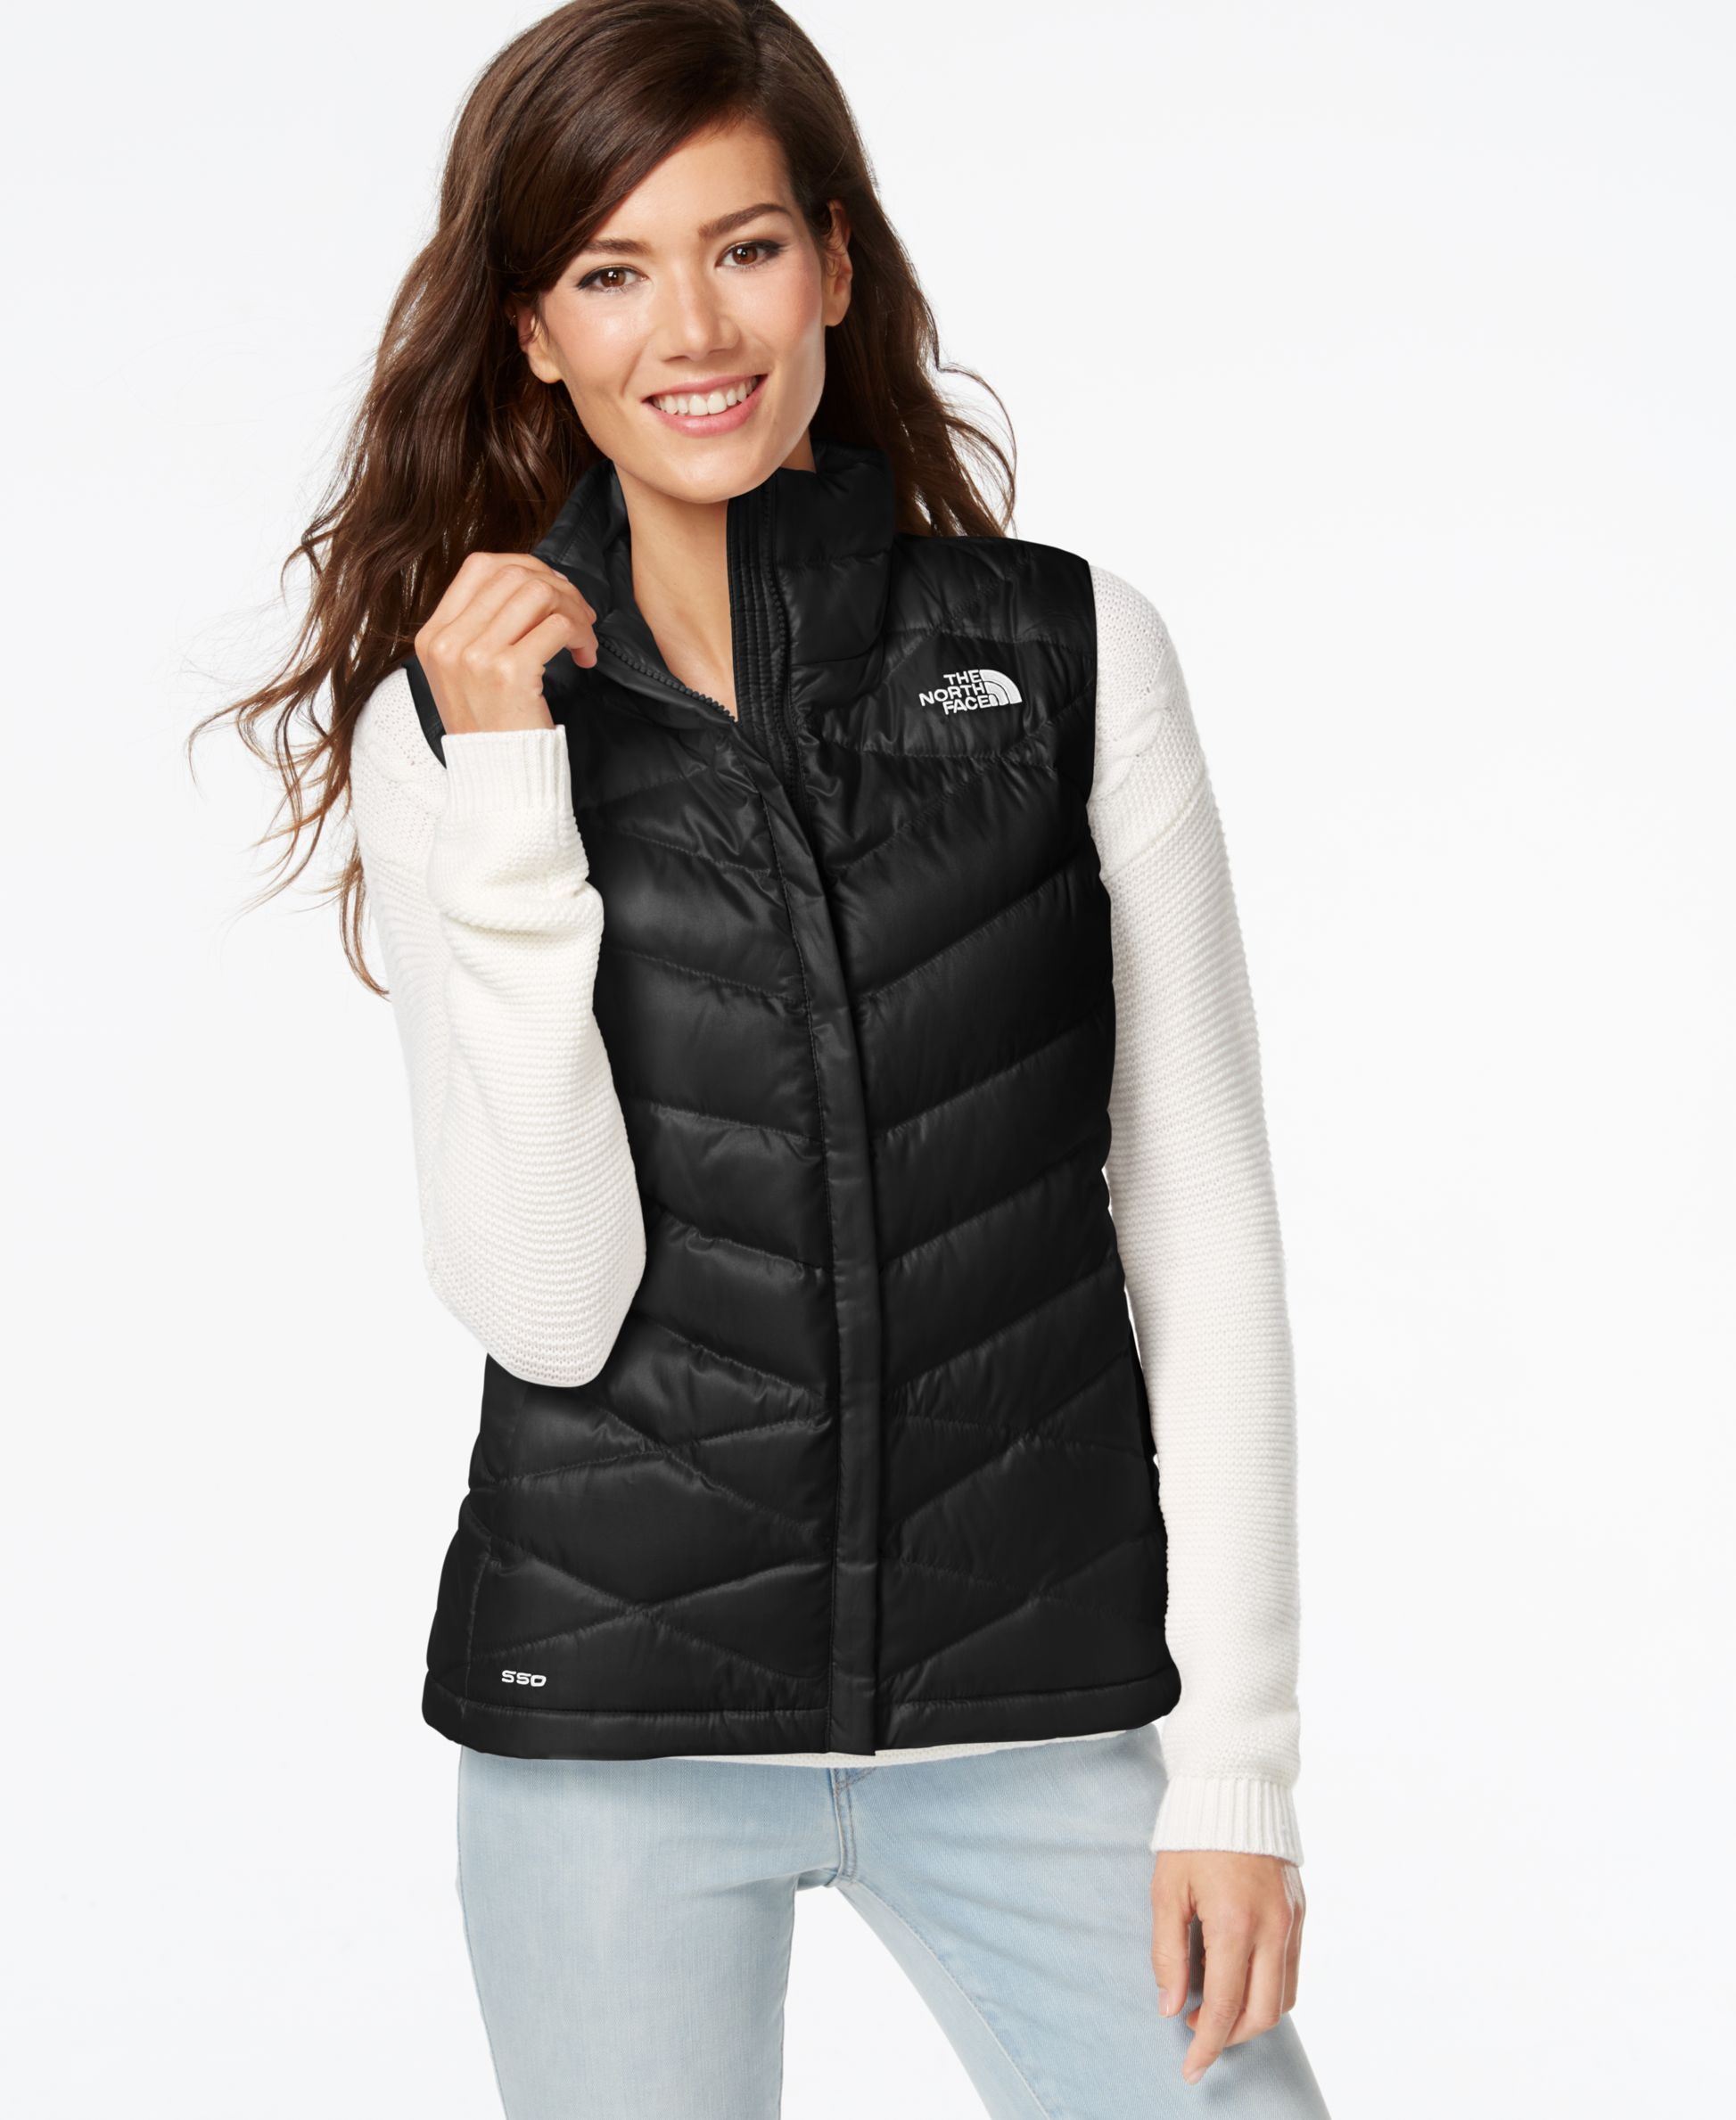 e8faa3adce The North Face Aconcagua Puffer Vest - Coats - Women - Macy s Black North  Face Vest